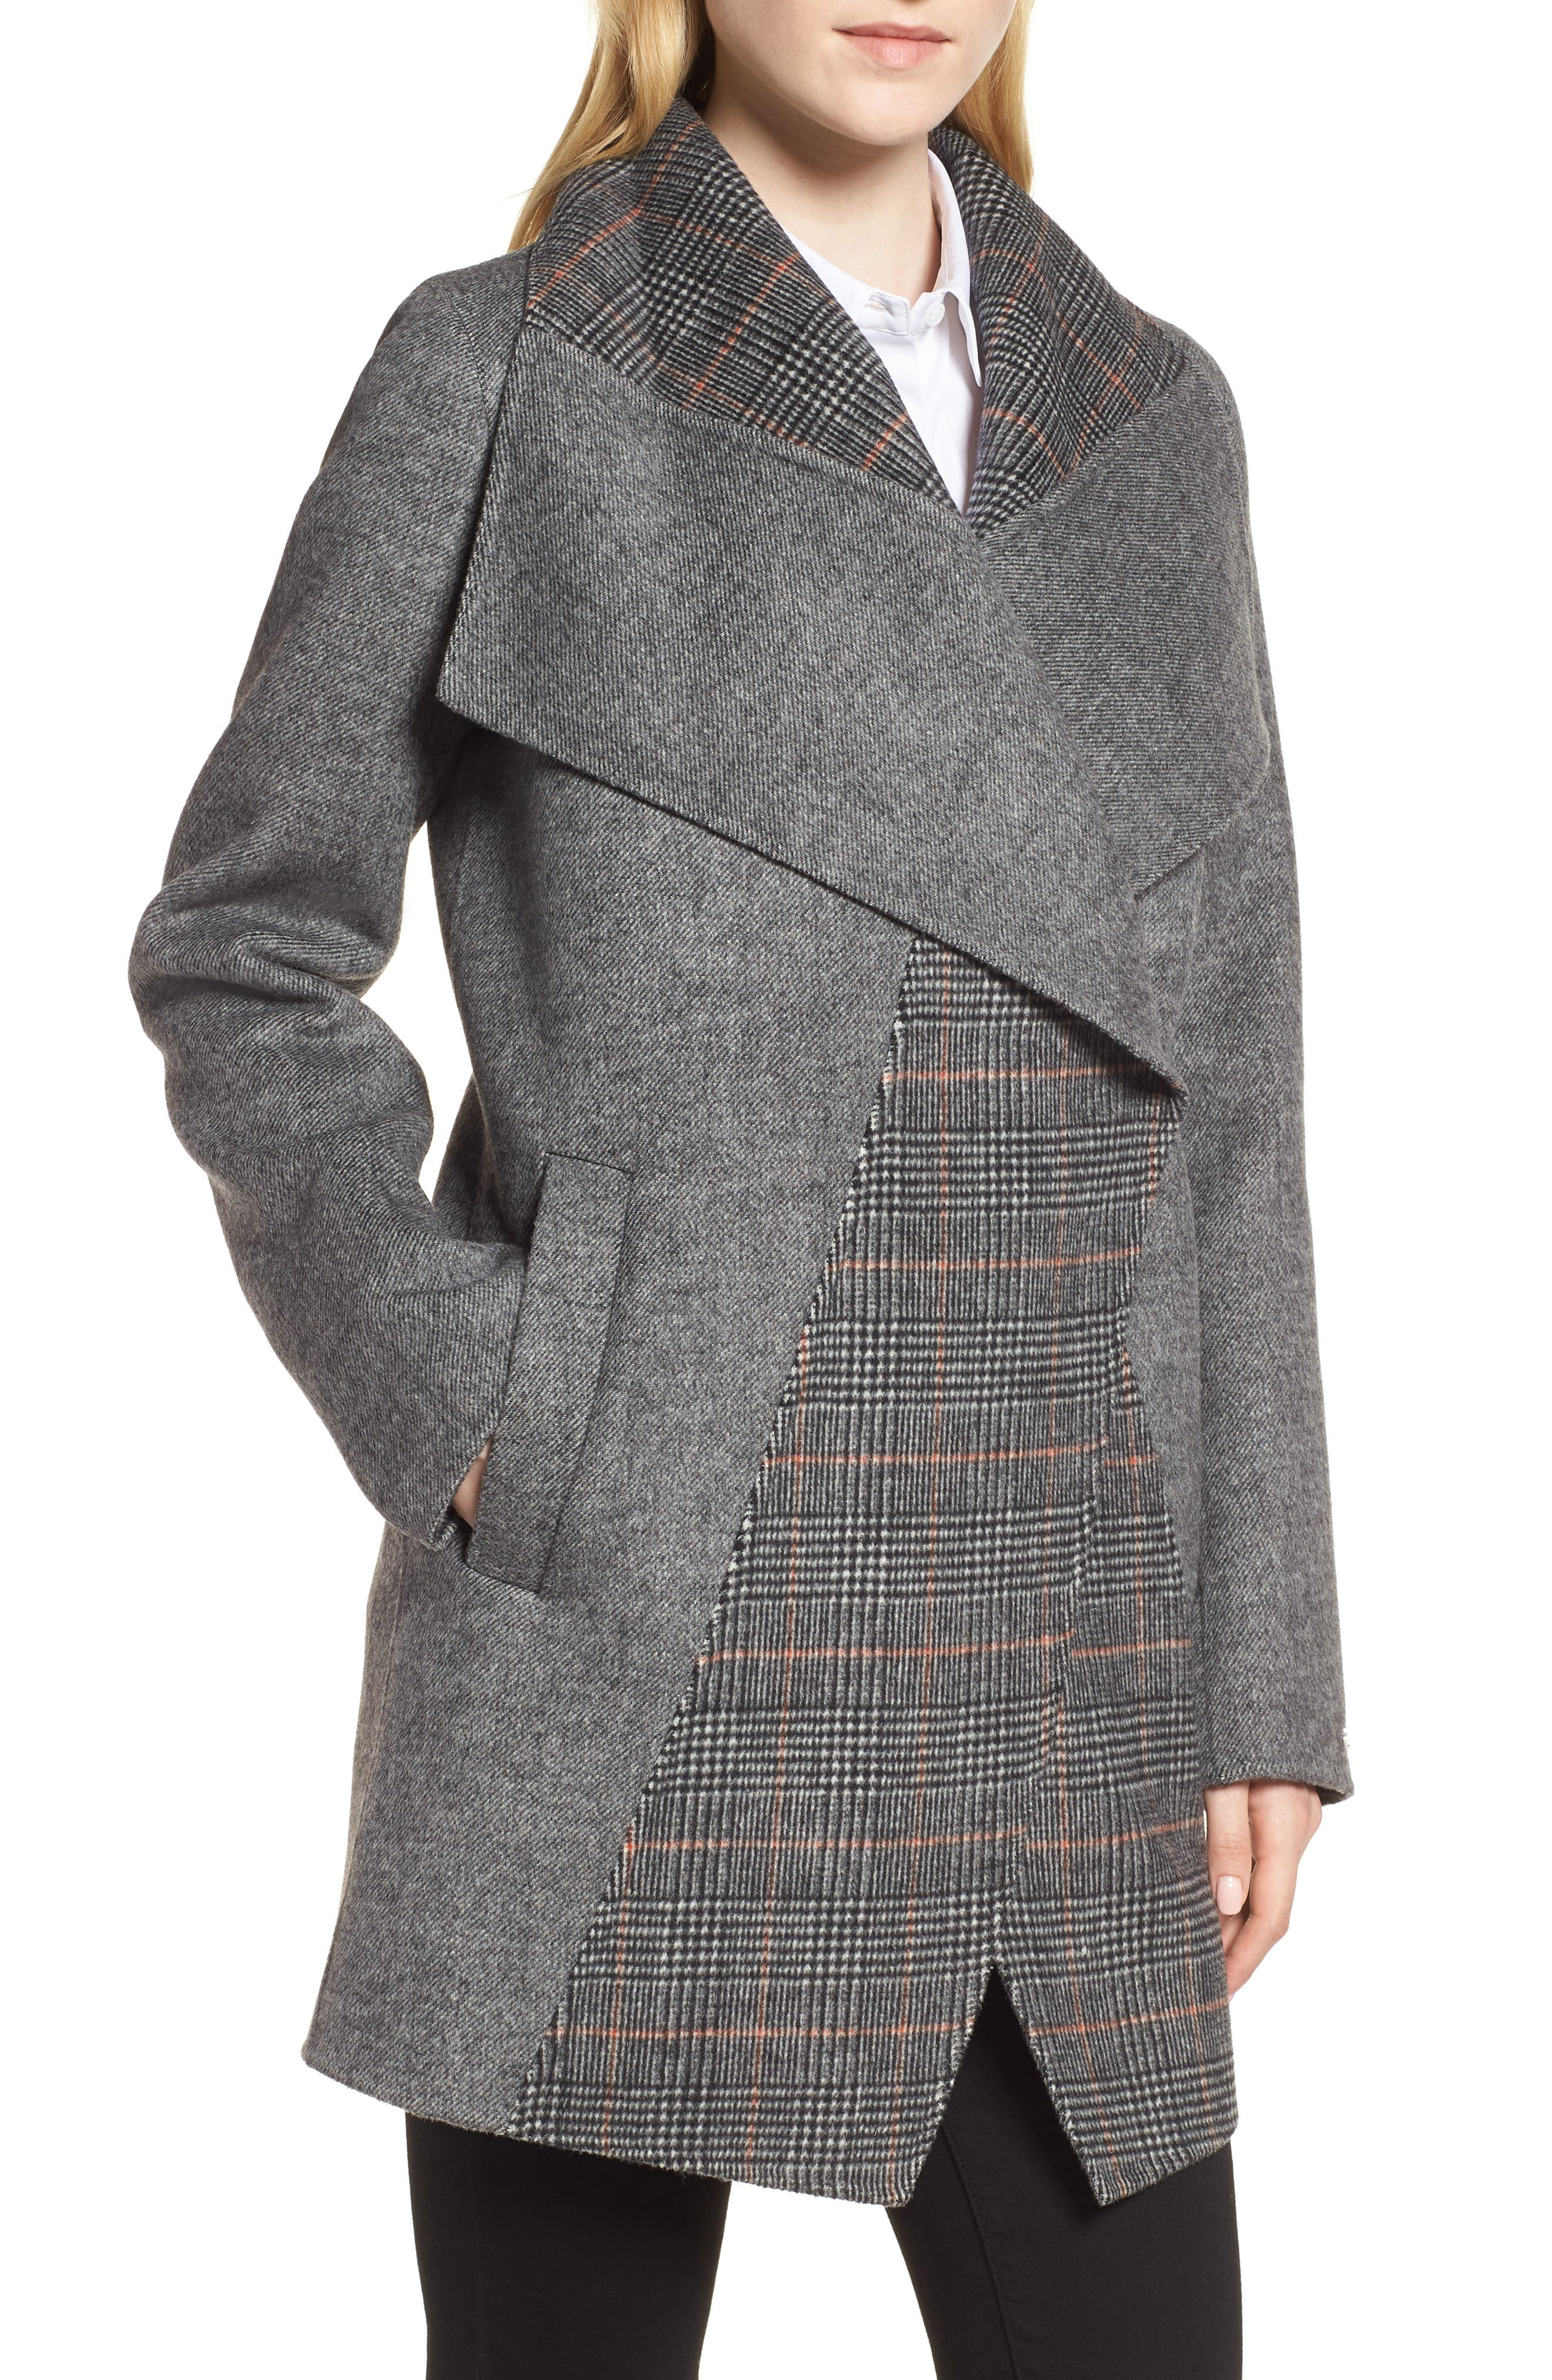 Nicky Double Face Wool Blend Oversize Coat,                         Main,                         color, GREY COMBO TWILL/ PLAID